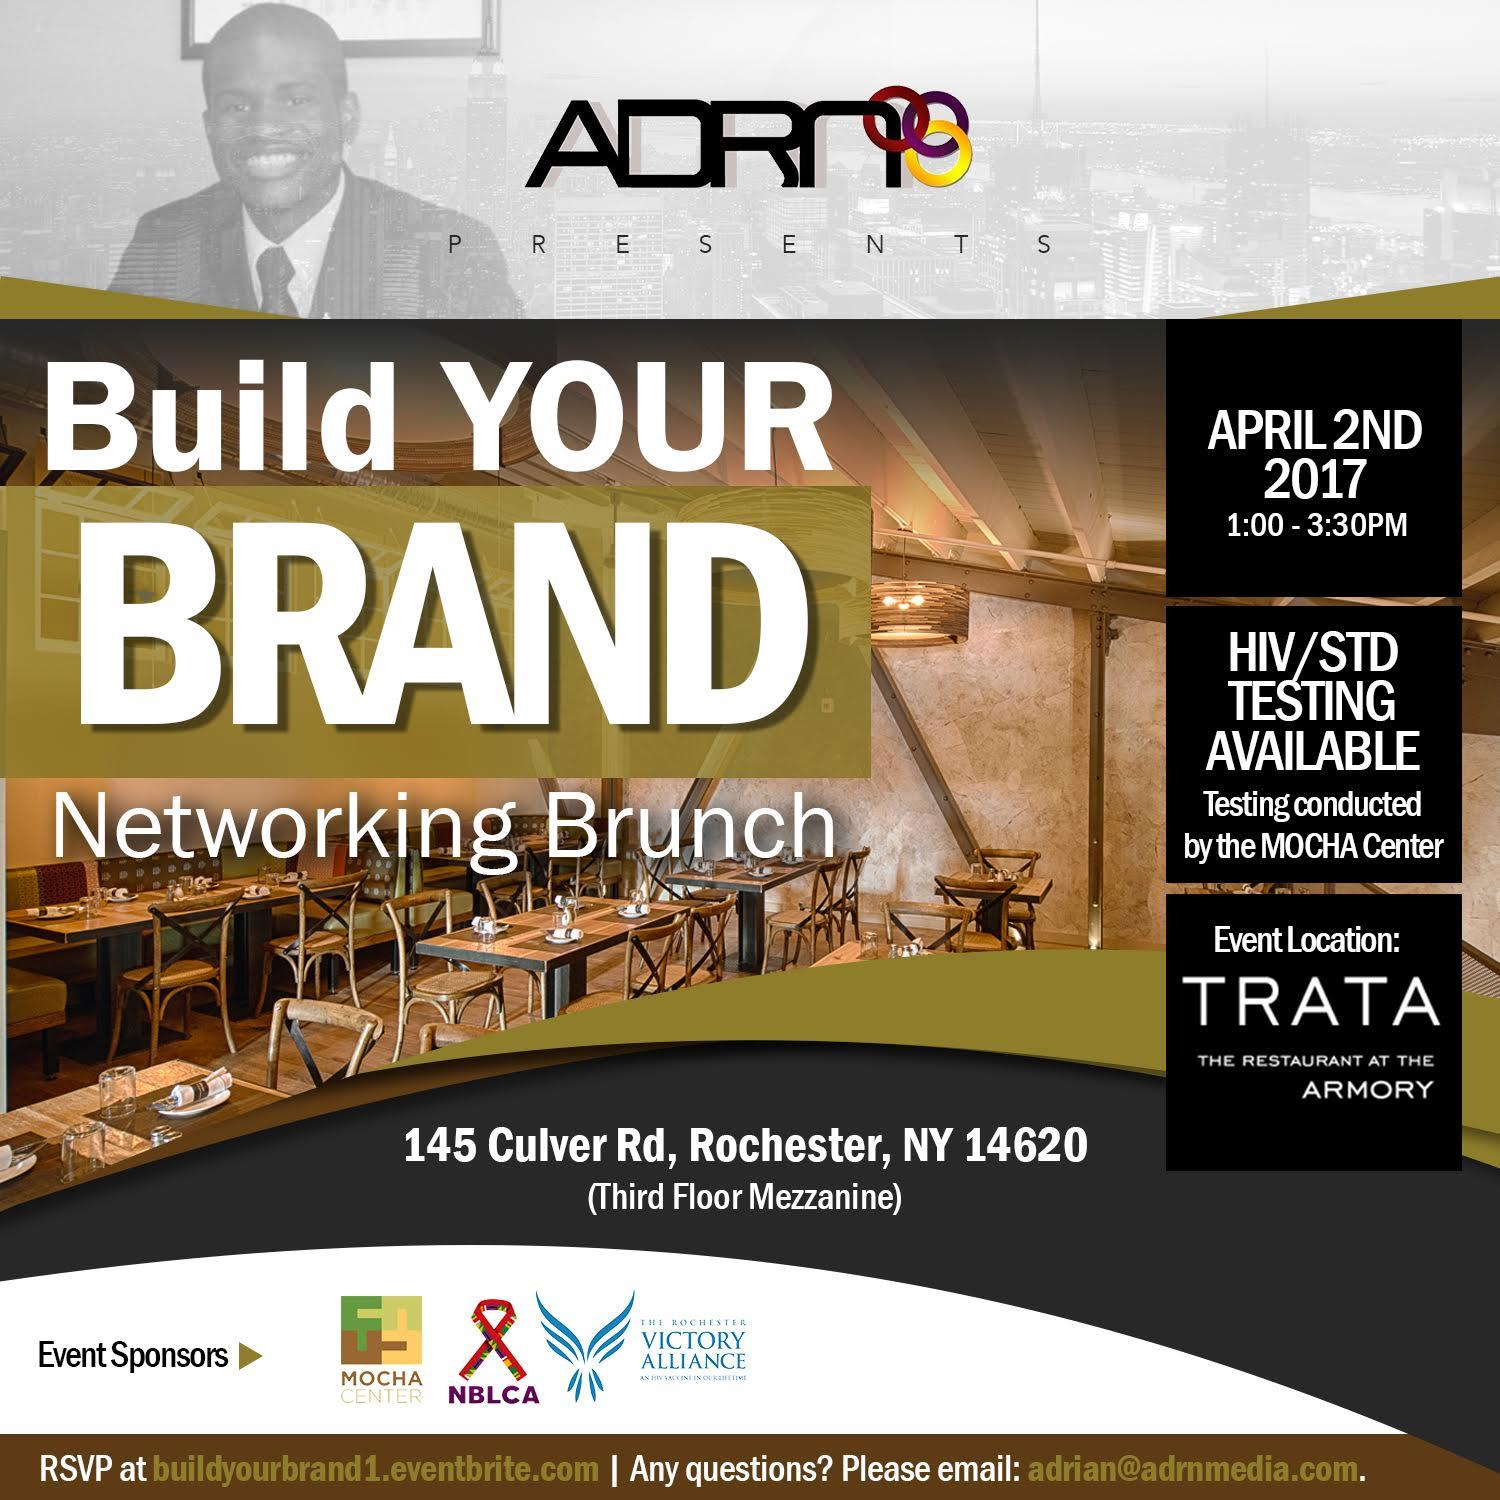 Build Your Brand Networking Brunch